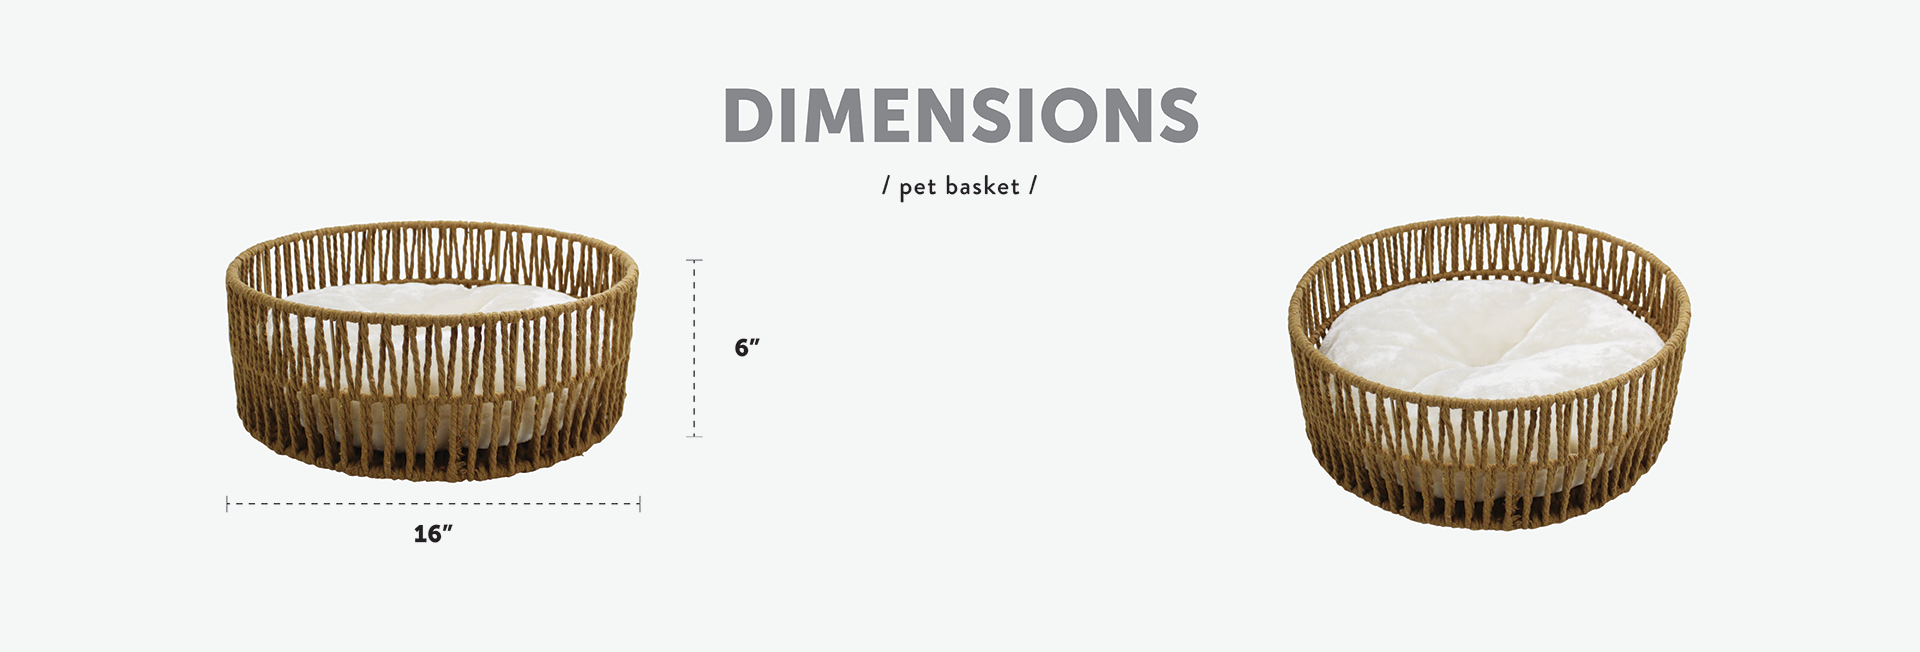 dimensions-pet-basket-for-dogs-english